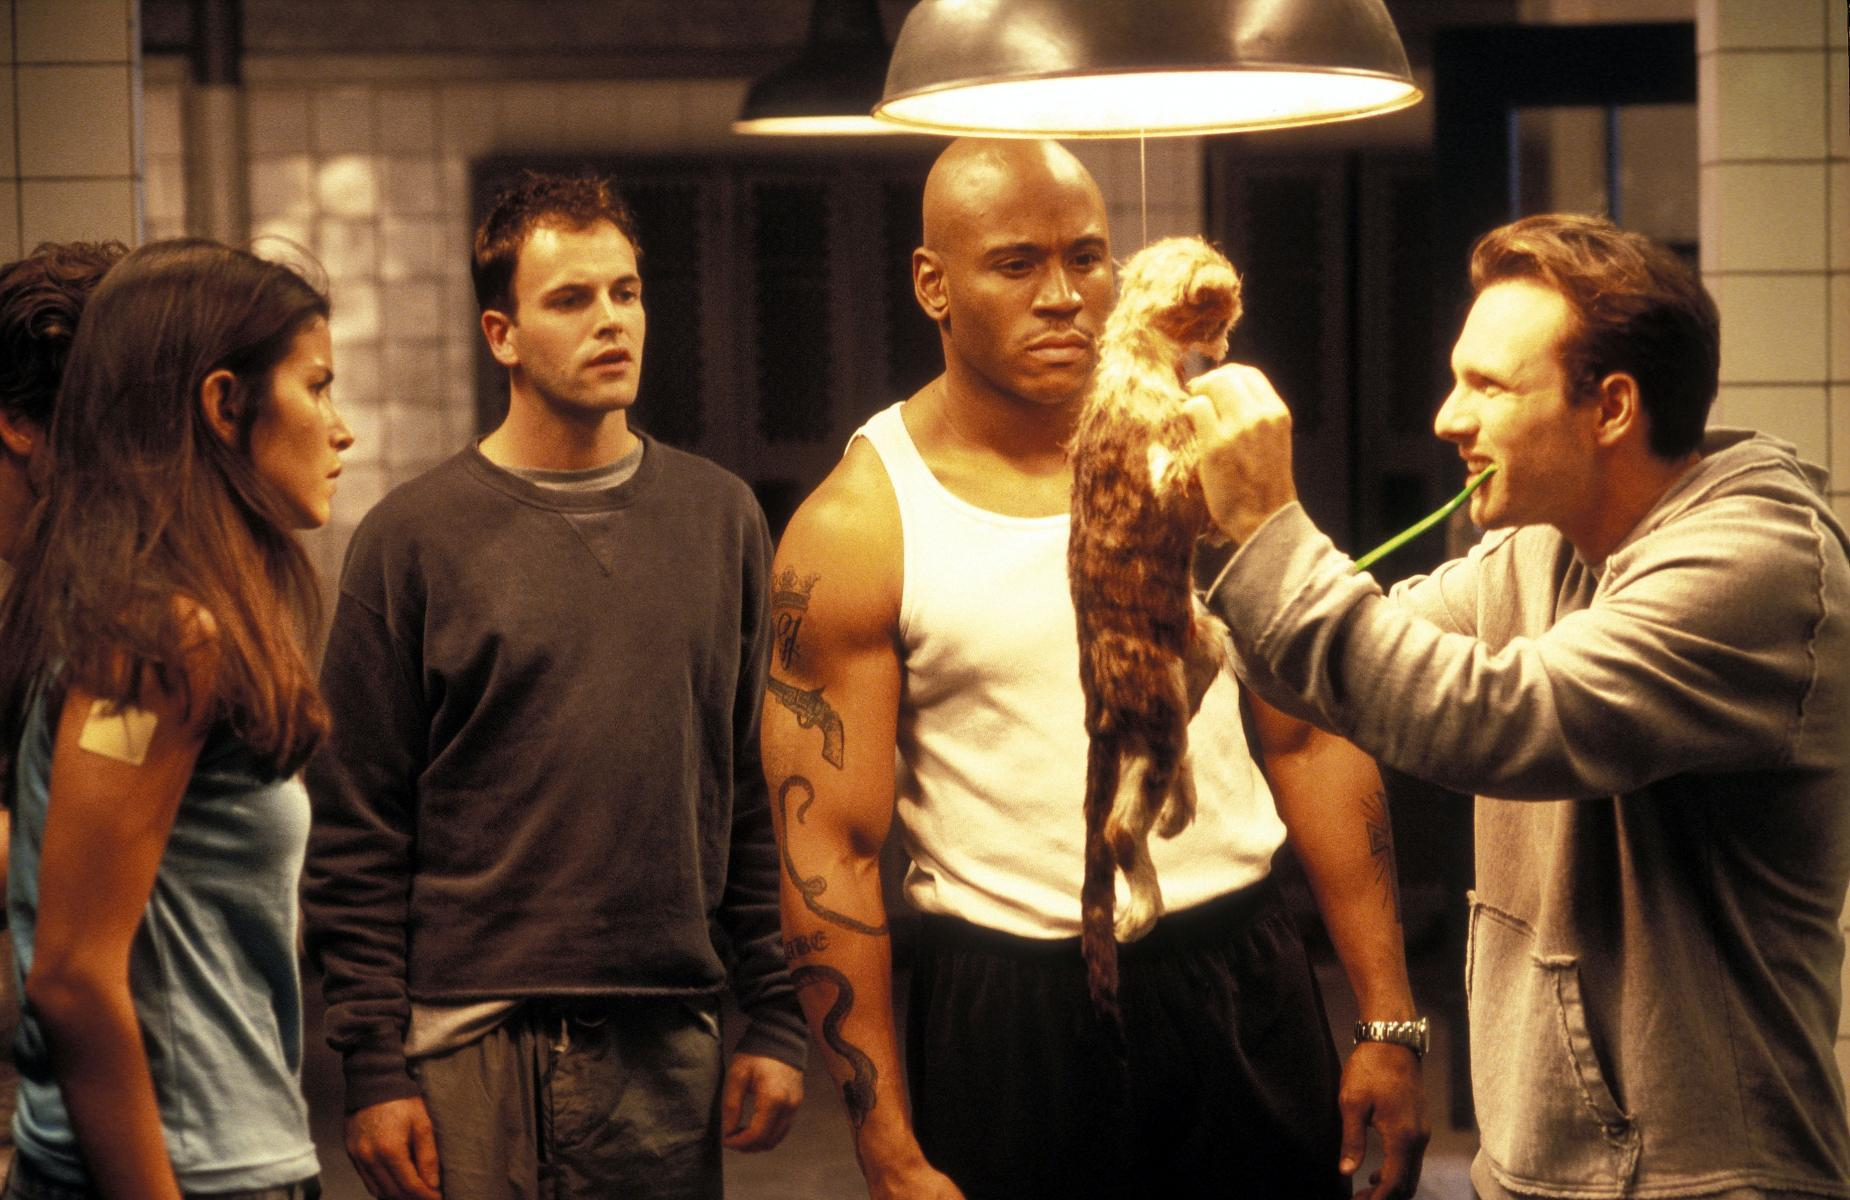 image gallery for mindhunters filmaffinity